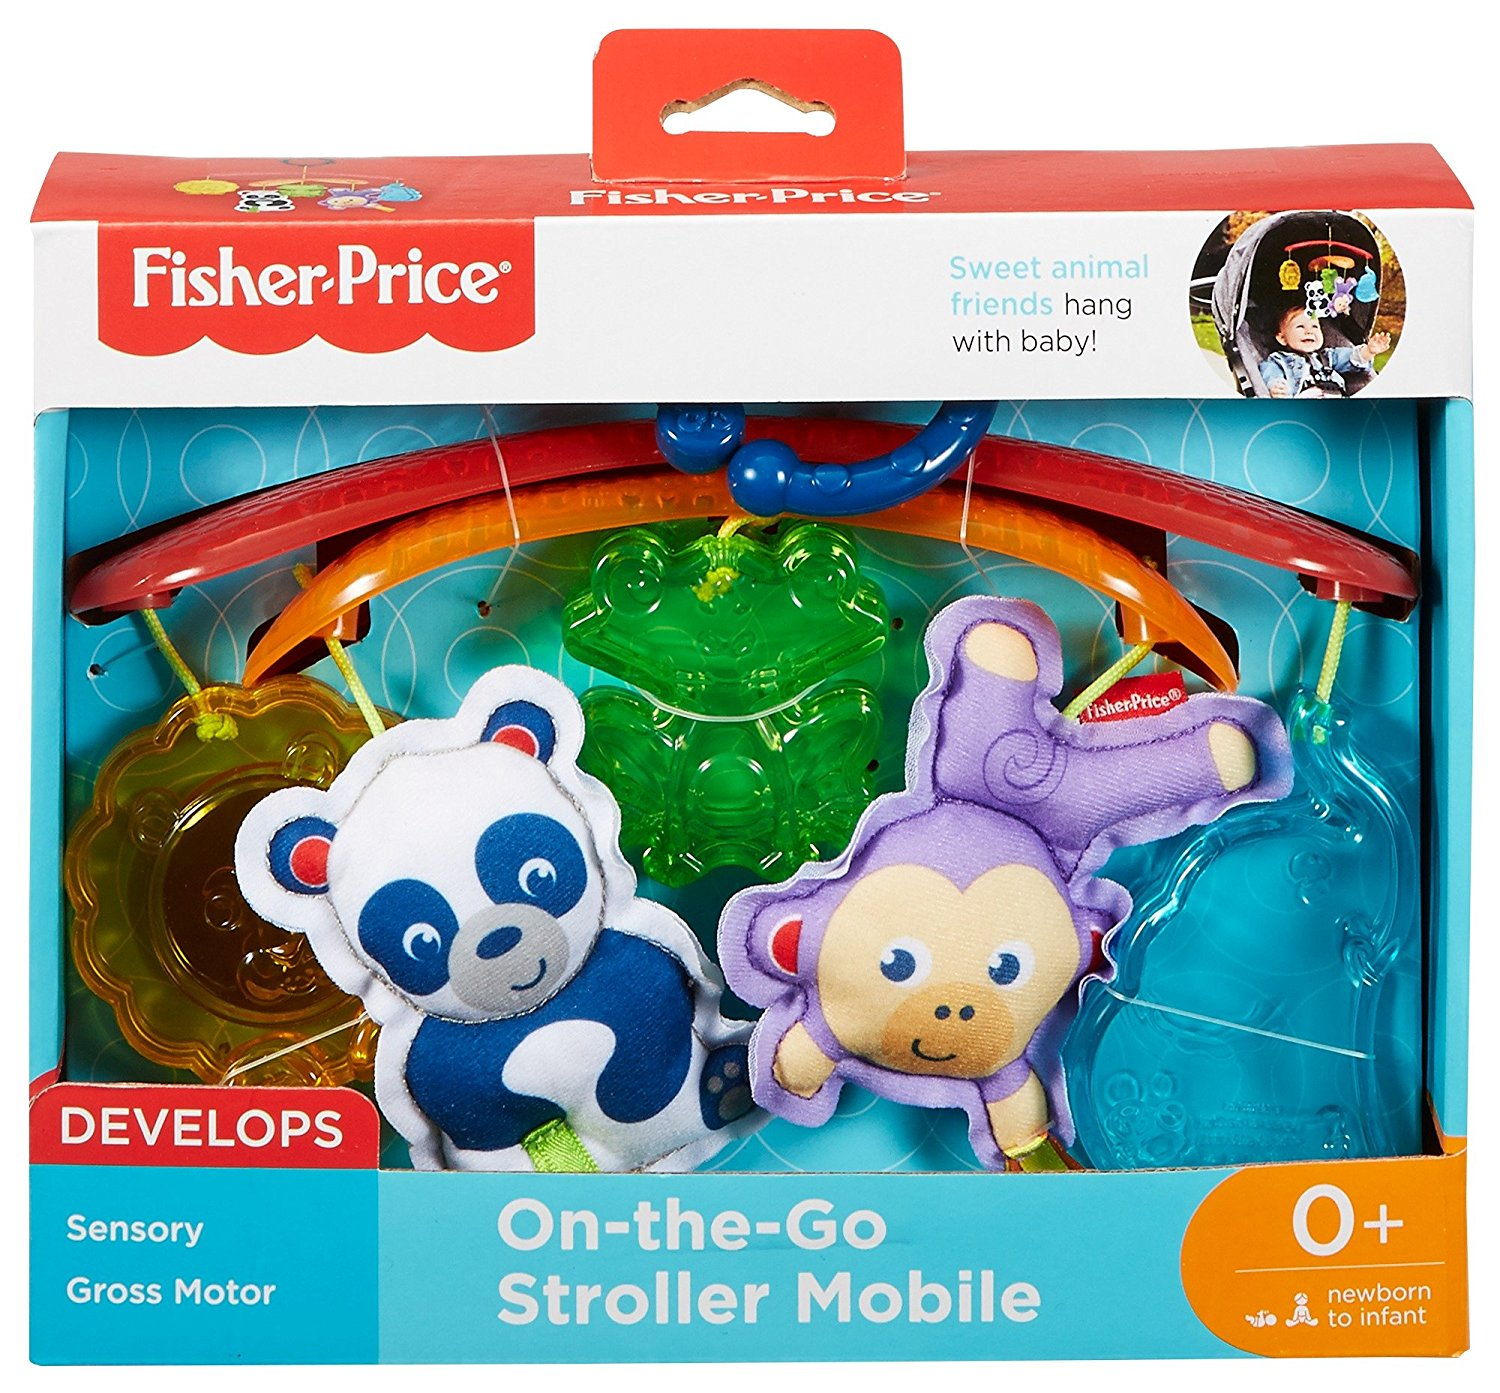 Fisher-price On-the-Go Stroller Mobile Toy DYW54